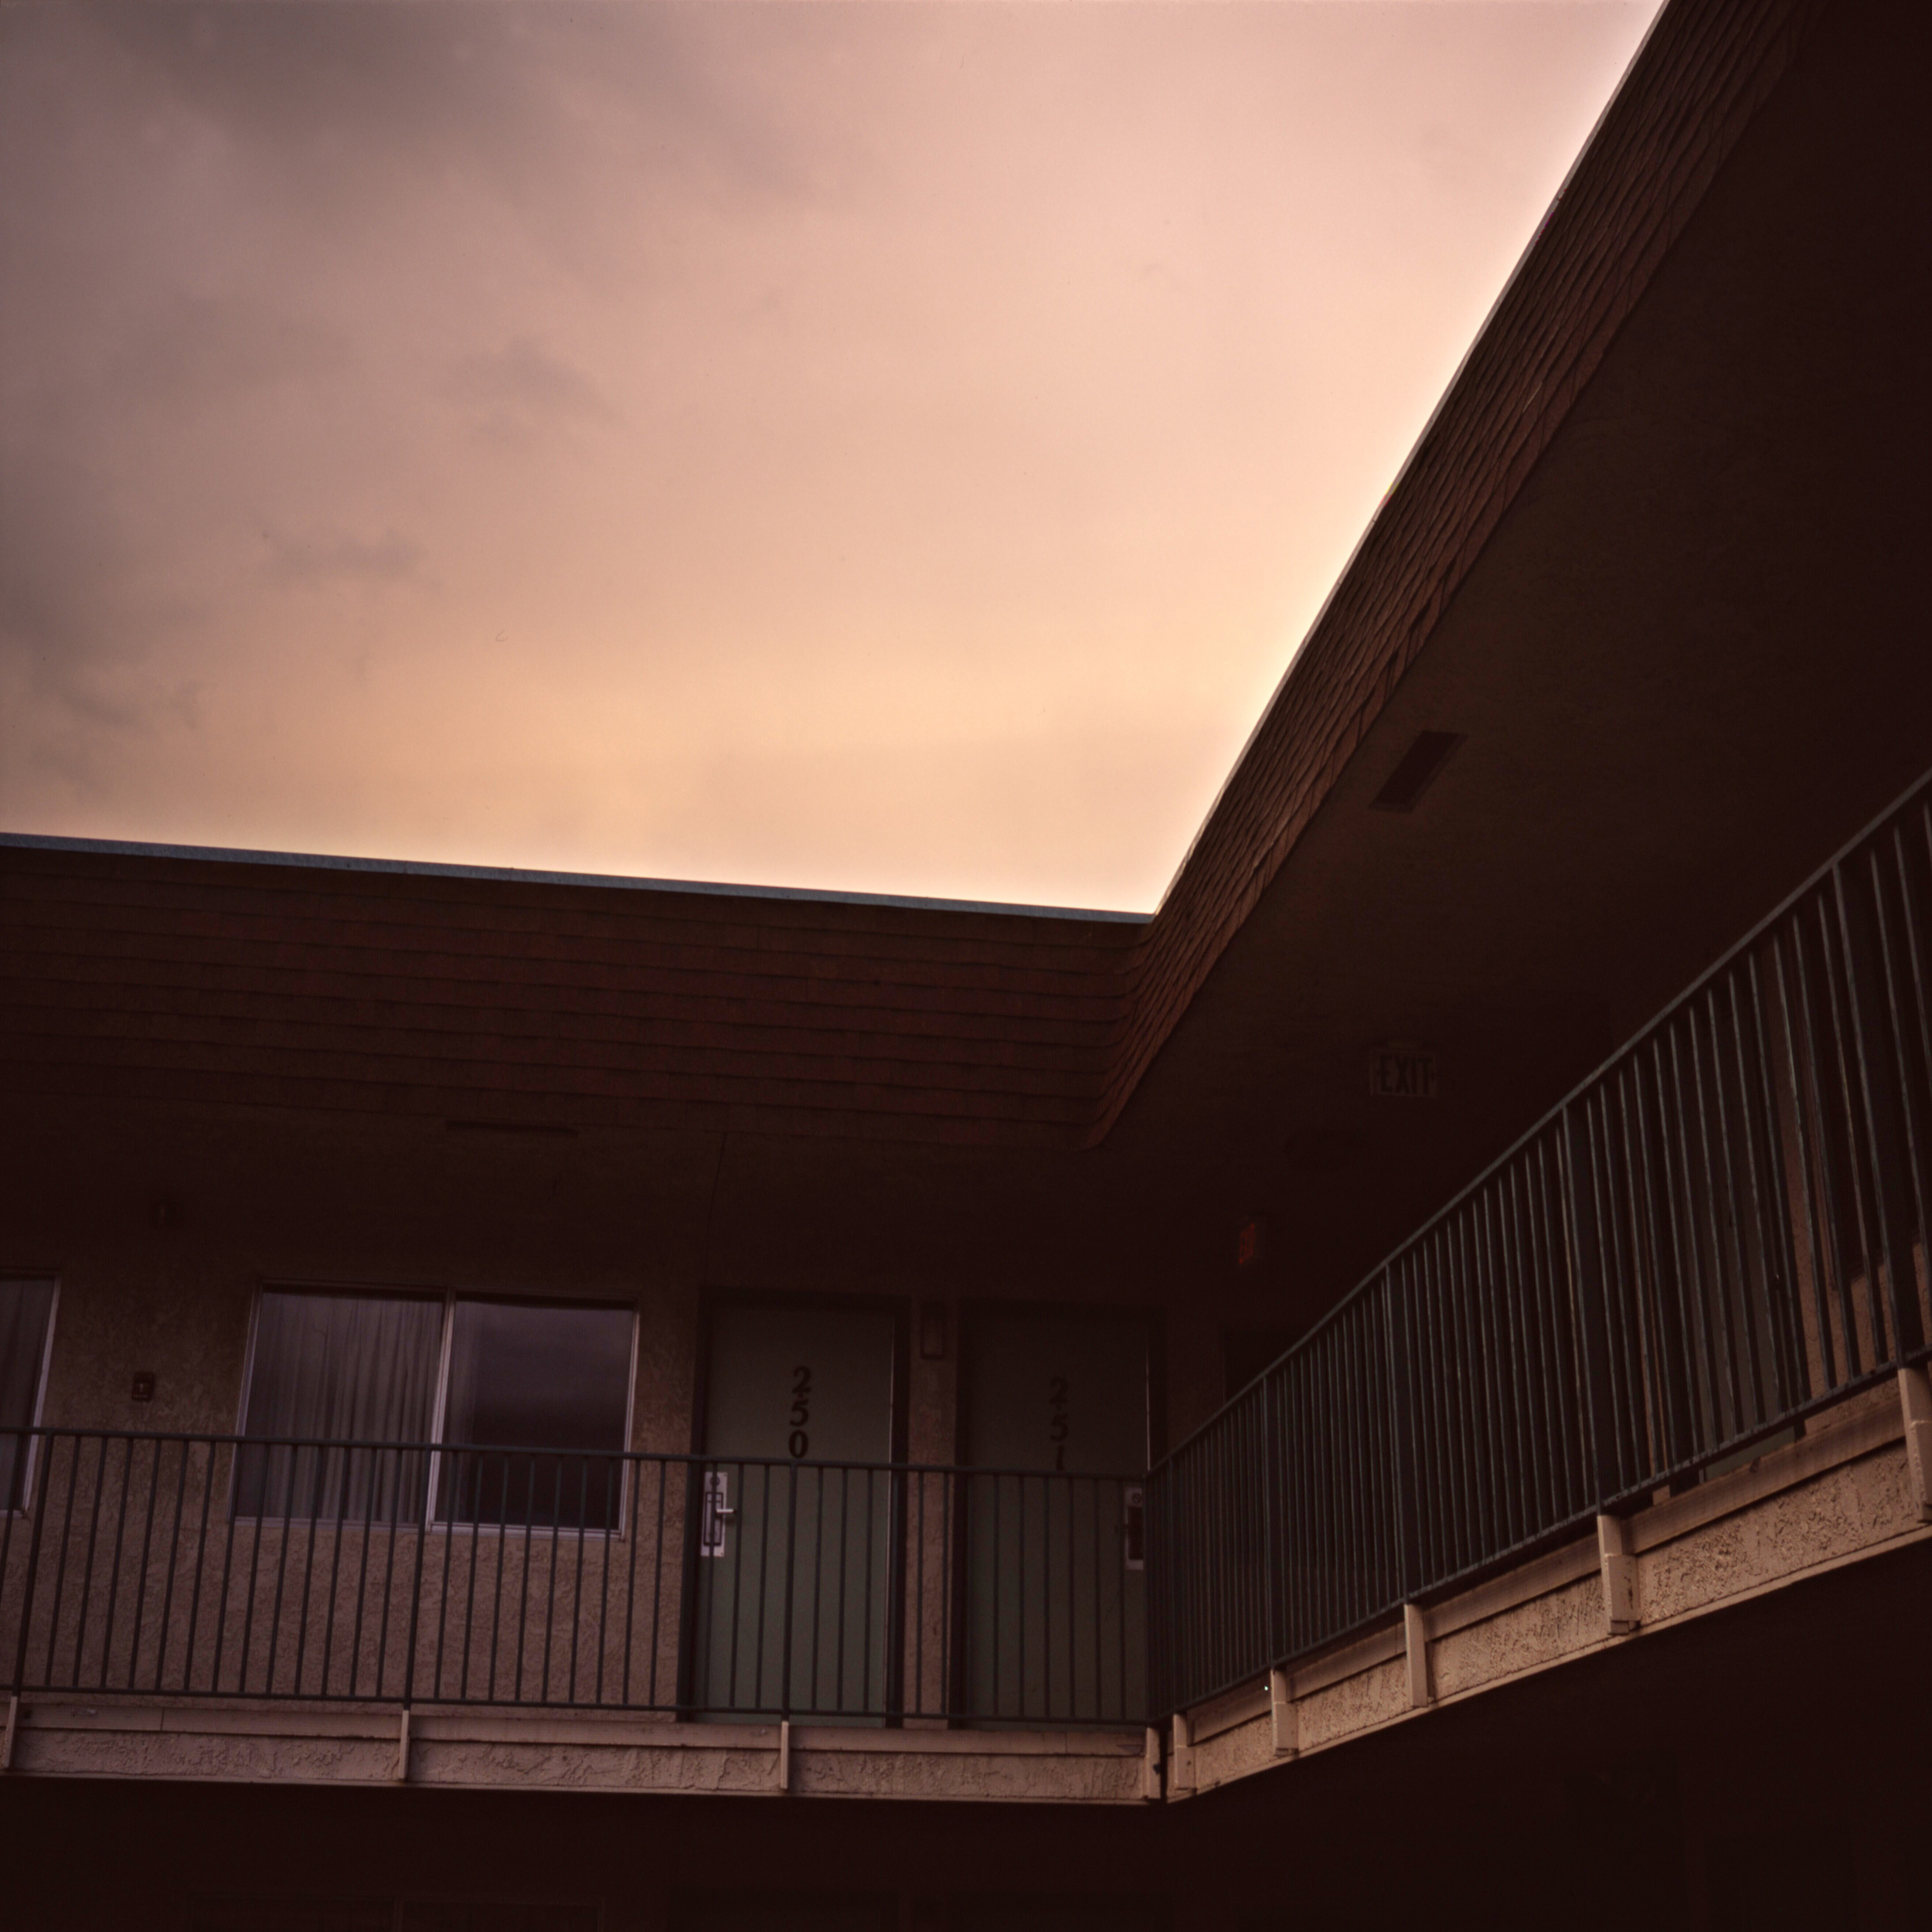 Motel at Sunset